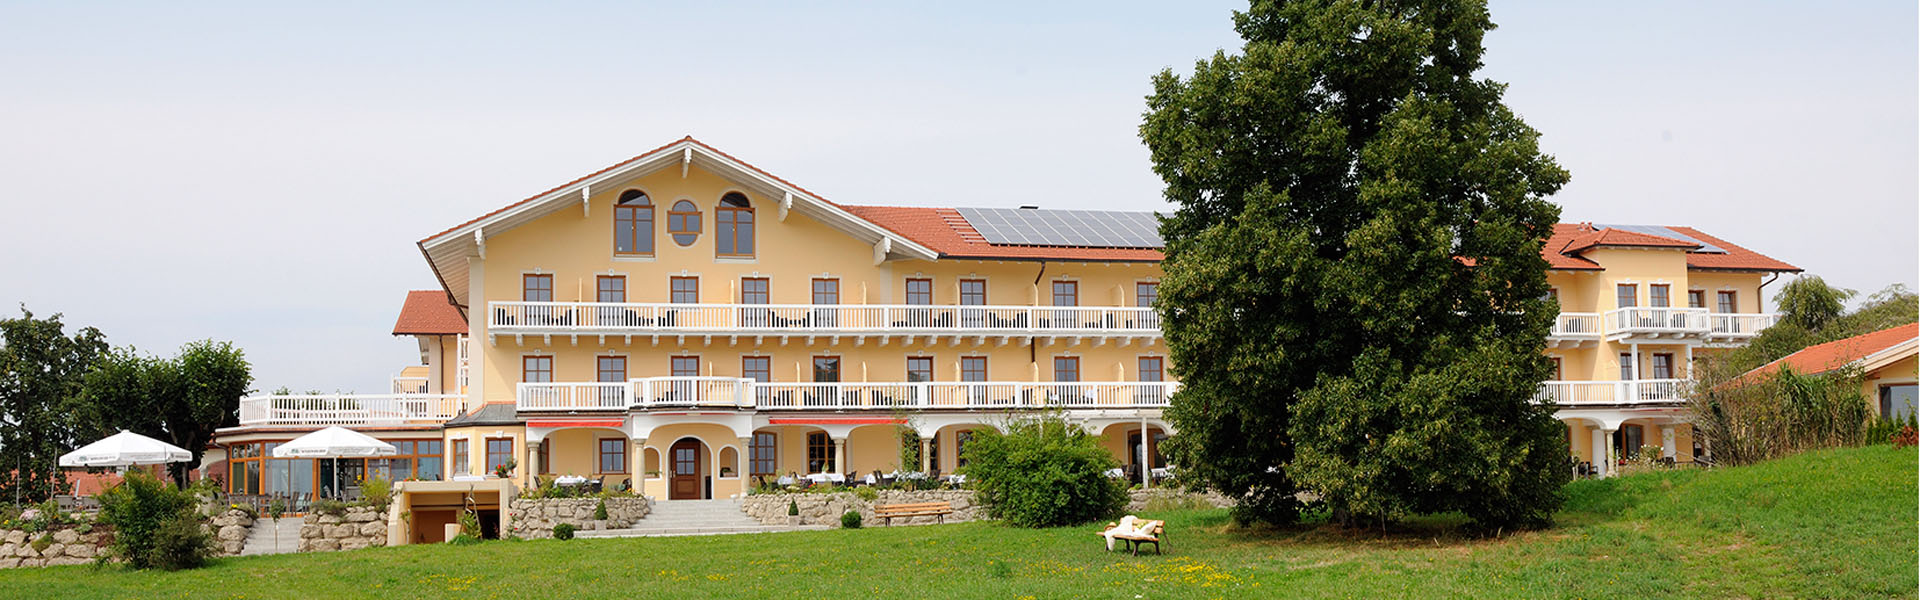 Hotel Gut Edermann in Teisendorf - Ihr top Wellnesshotel in Oberbayern am Alpenrand top Hotel Chiemsee, Berchtesgardener Land